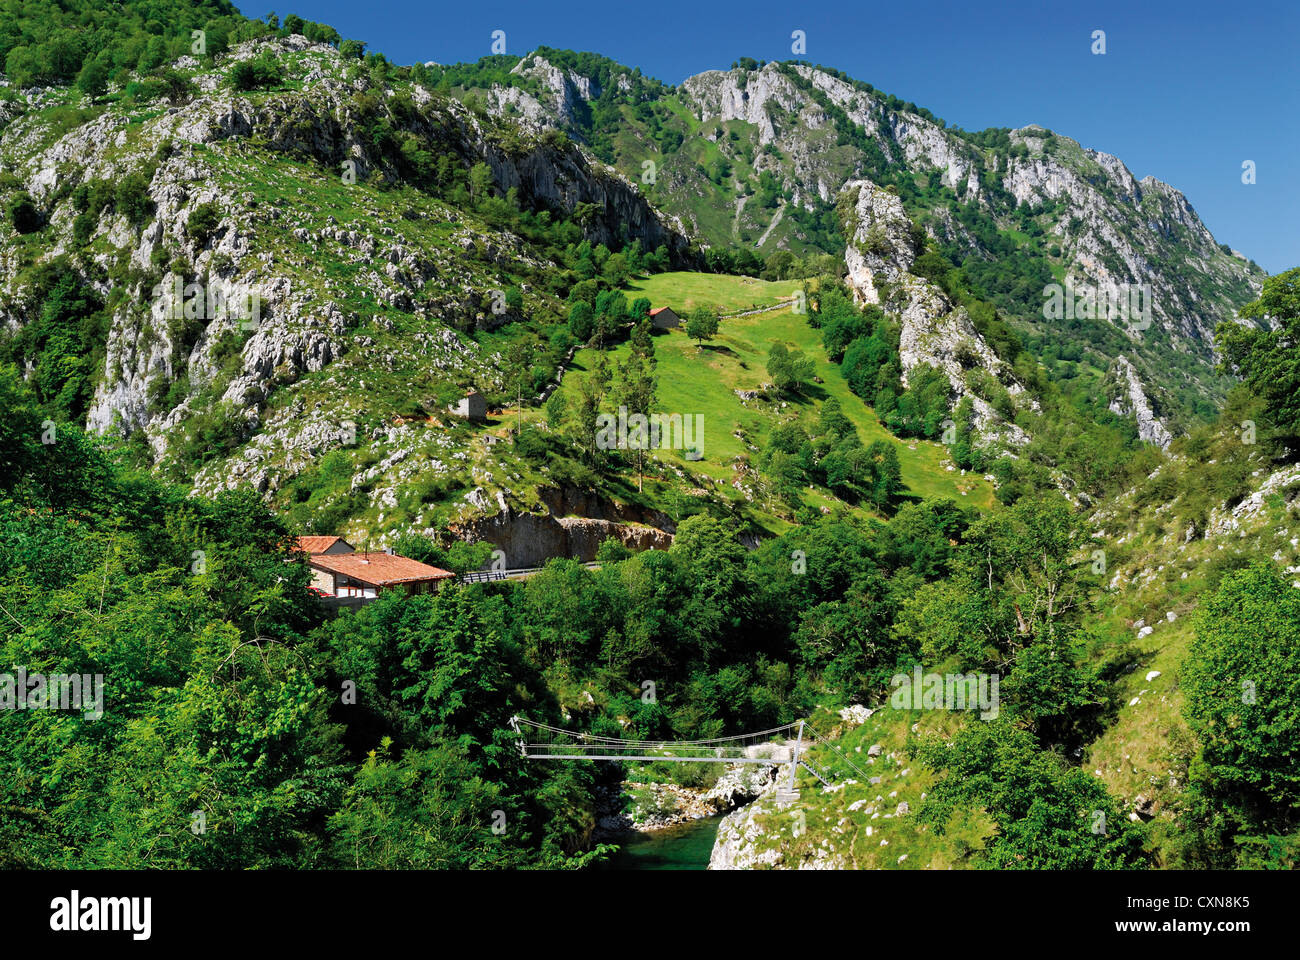 Spain, Asturias: Mountain view of the Valley of river Cares in National Park Picos de Europa - Stock Image